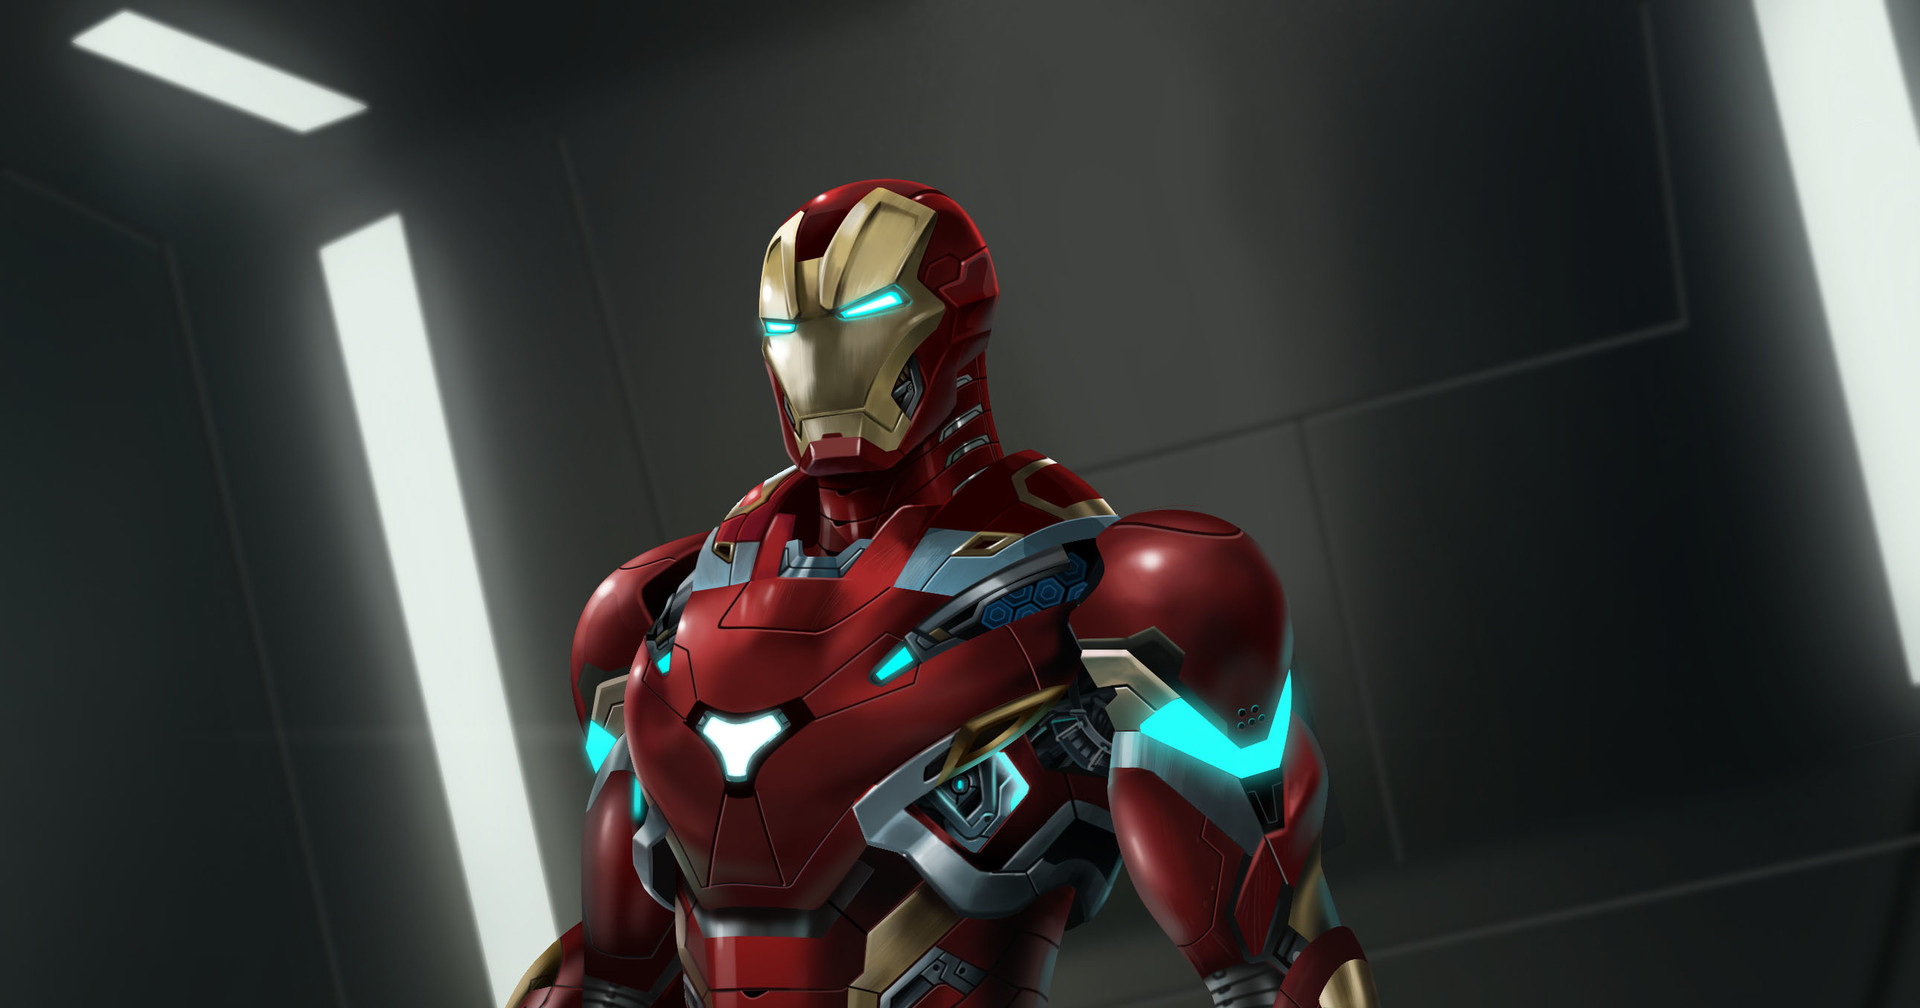 1920x1080 iron man suit artwork laptop full hd 1080p hd 4k wallpapers images backgrounds photos and pictures 1920x1080 iron man suit artwork laptop